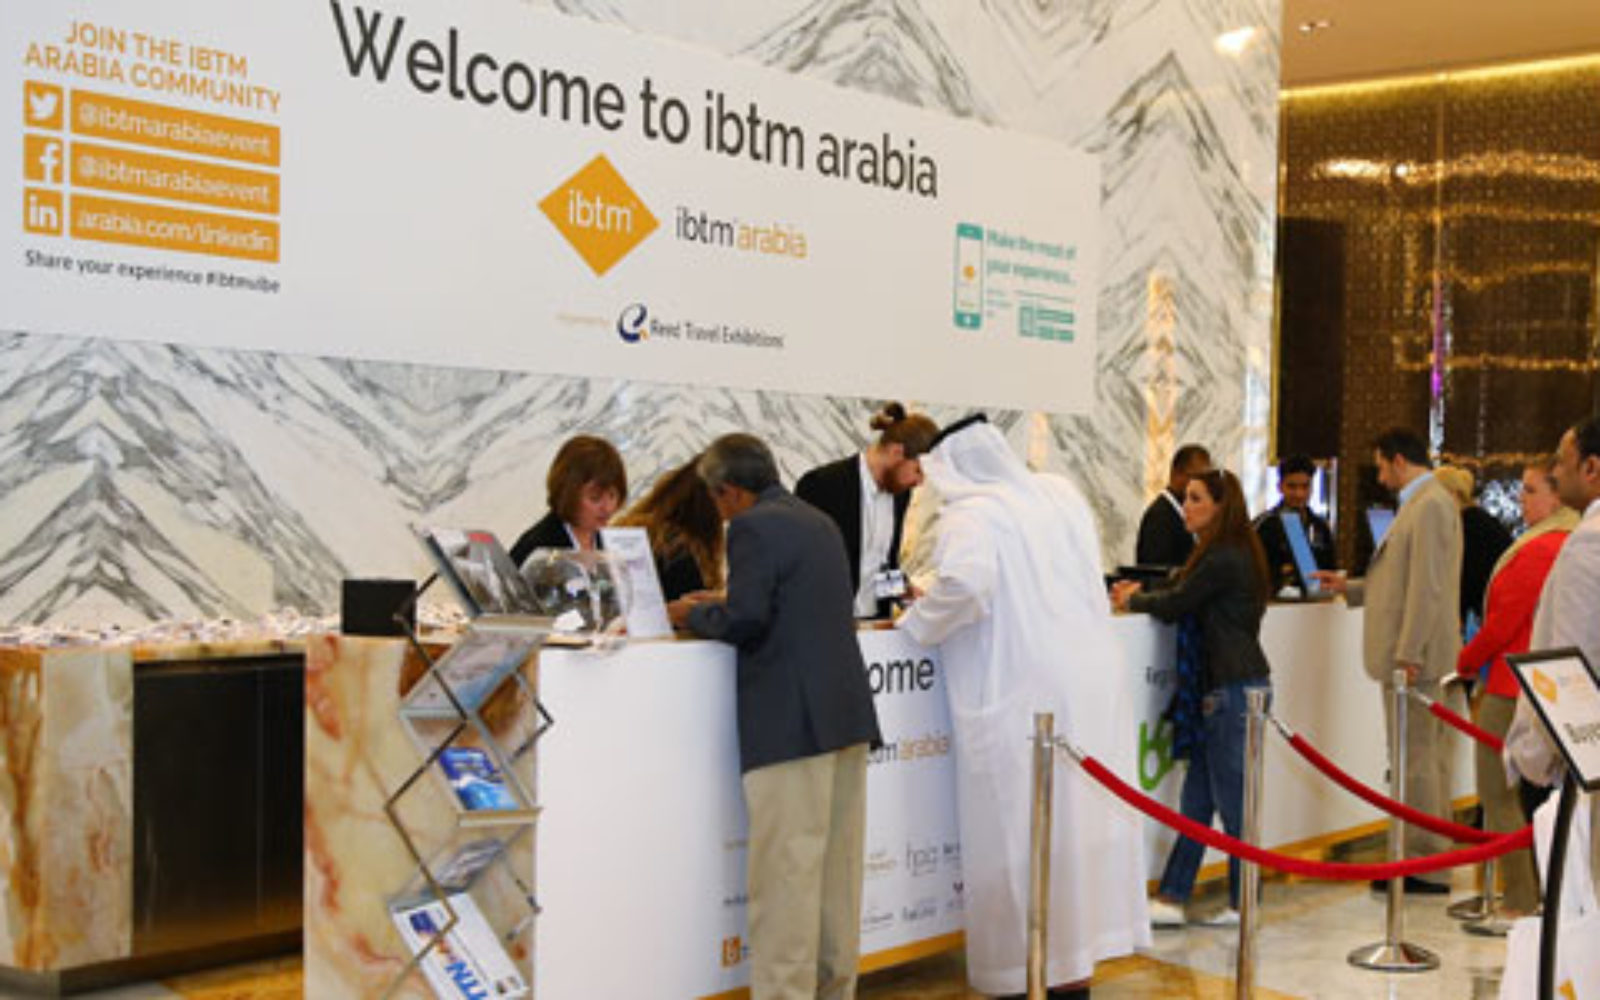 ibtm arabia launches one-day attendance option for UAE